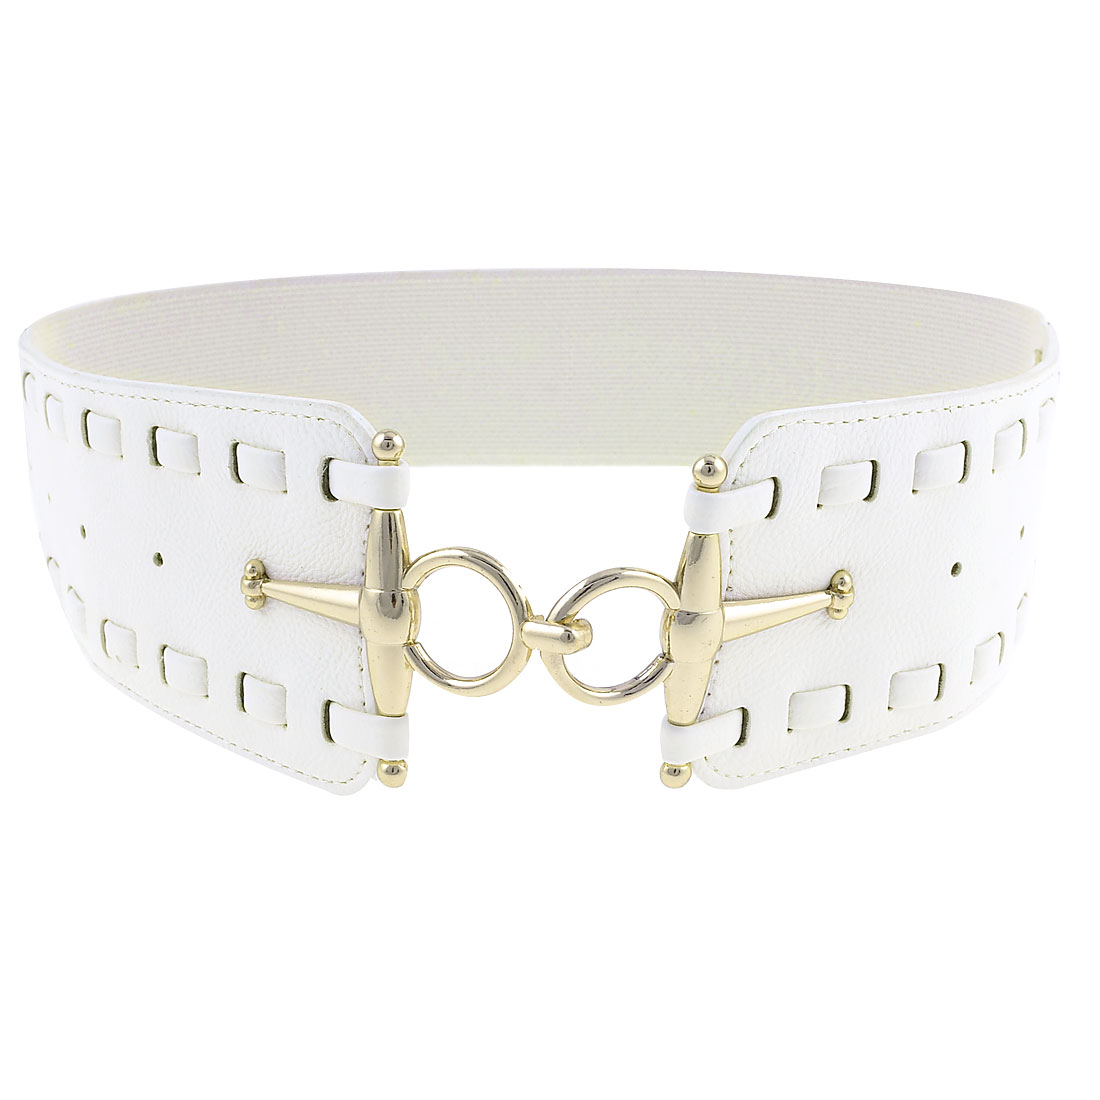 White Faux Leather Interlocking Buckle Stretchy Cinch Waist Belt for Women